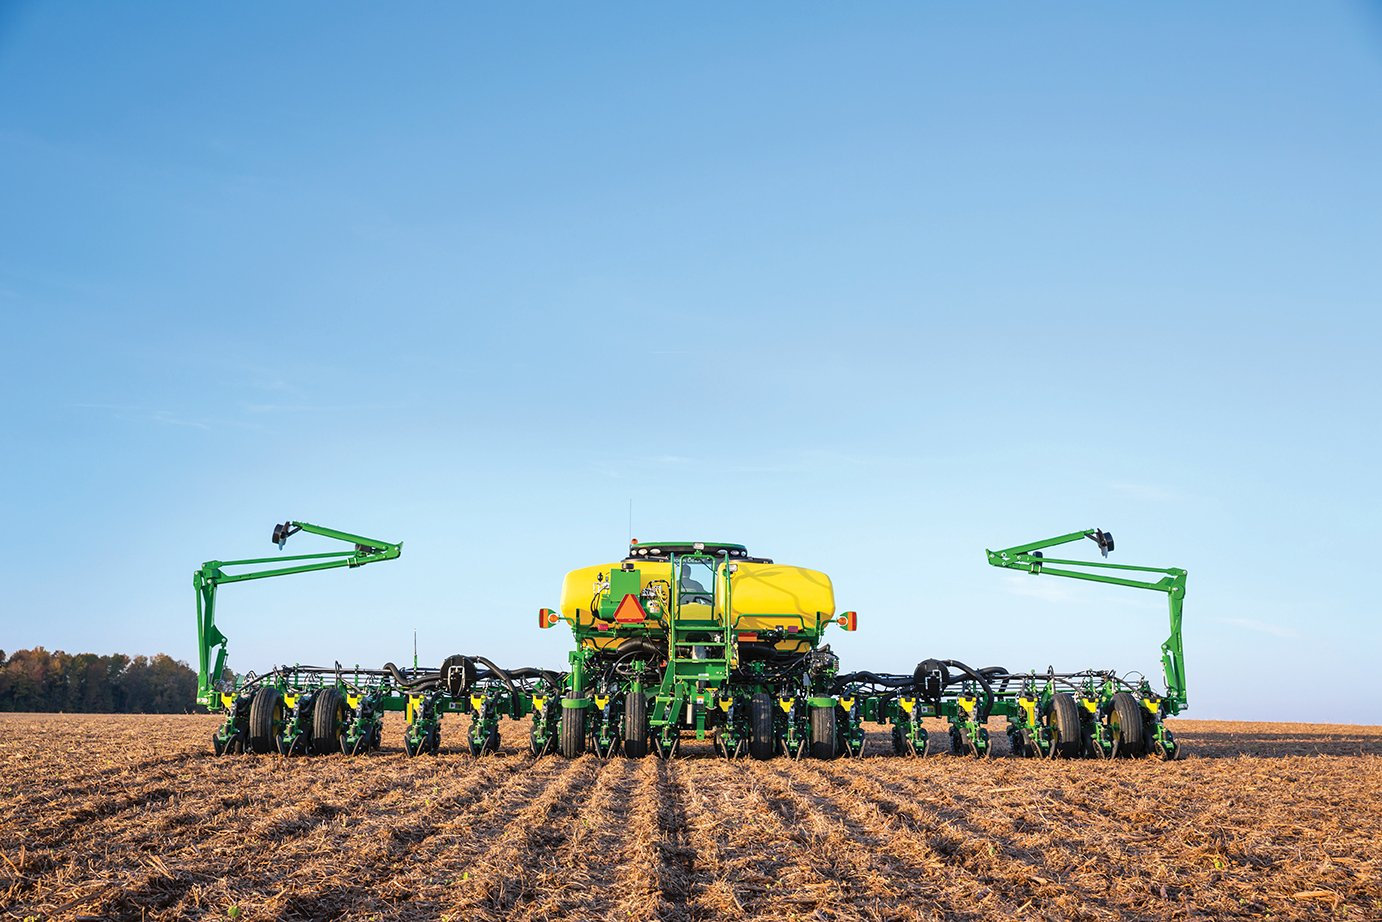 John Deere's tech-fueled mission to feed a hungry world, one seed at a time